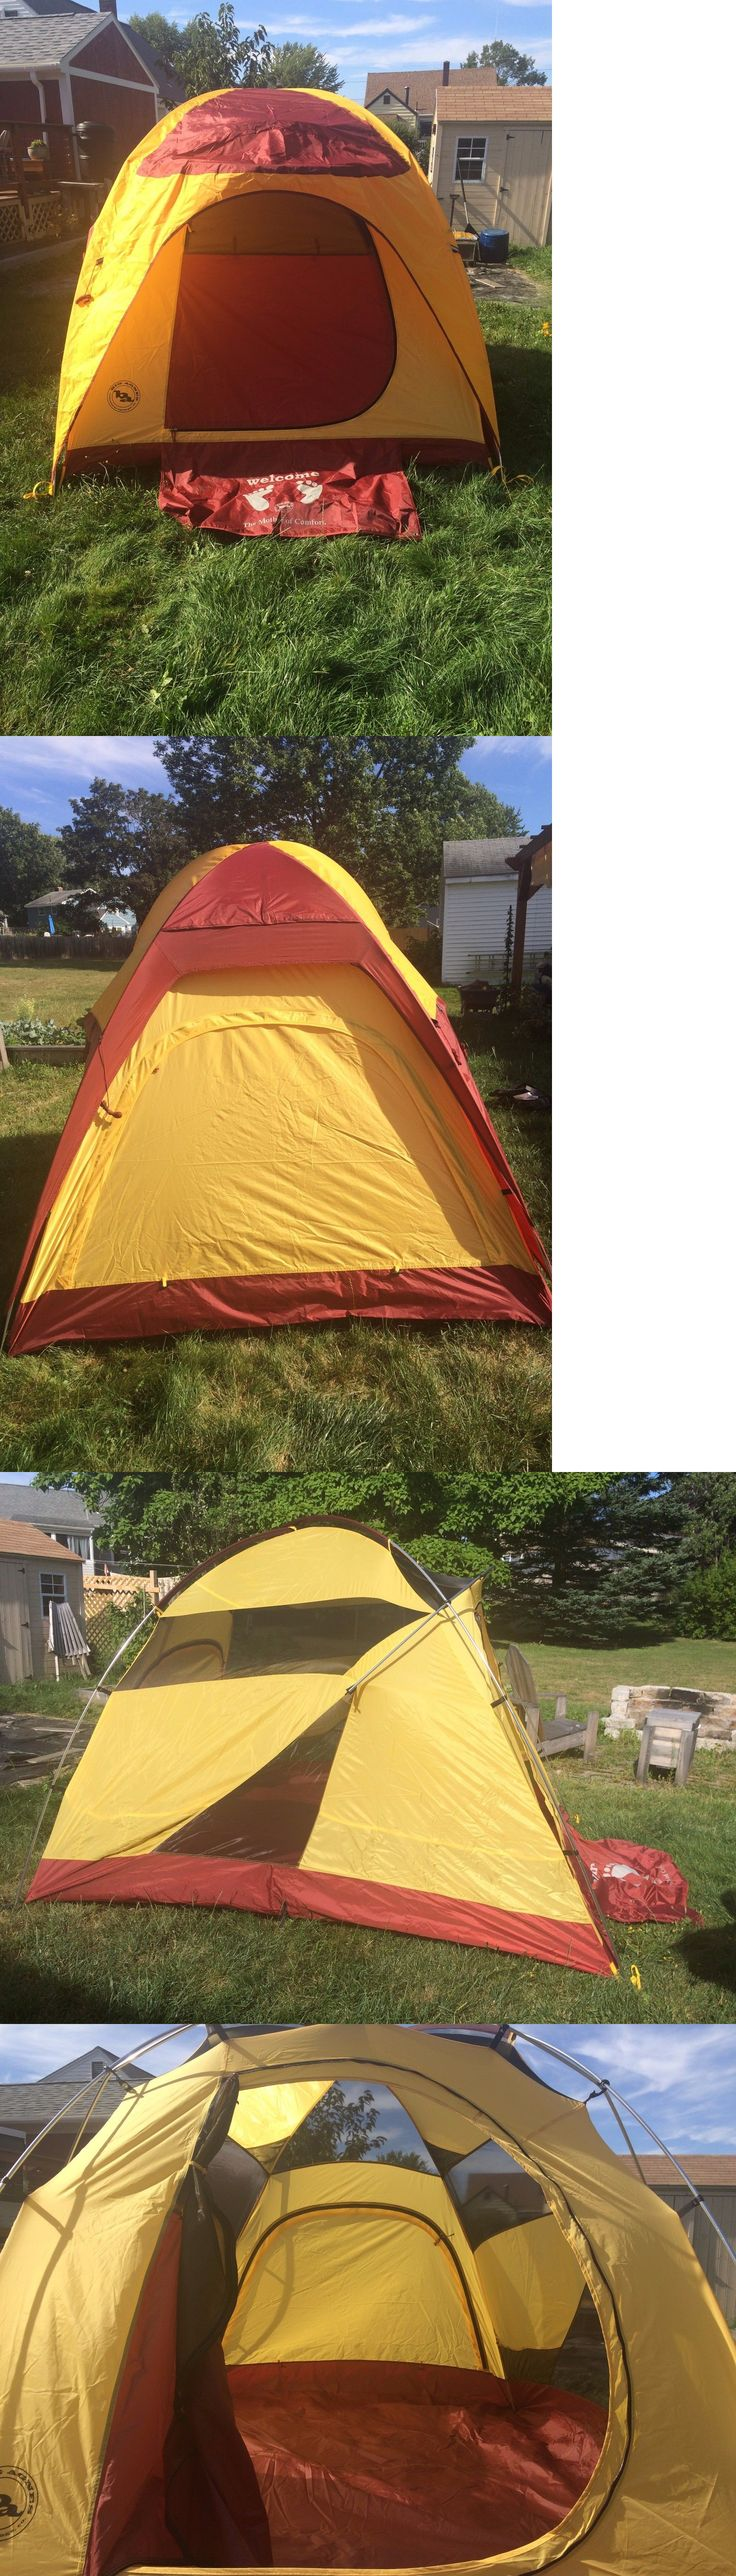 Tent and Canopy Accessories 36120: Big Agnes Big House 4 Person Tent -> BUY IT NOW ONLY: $200 on eBay!